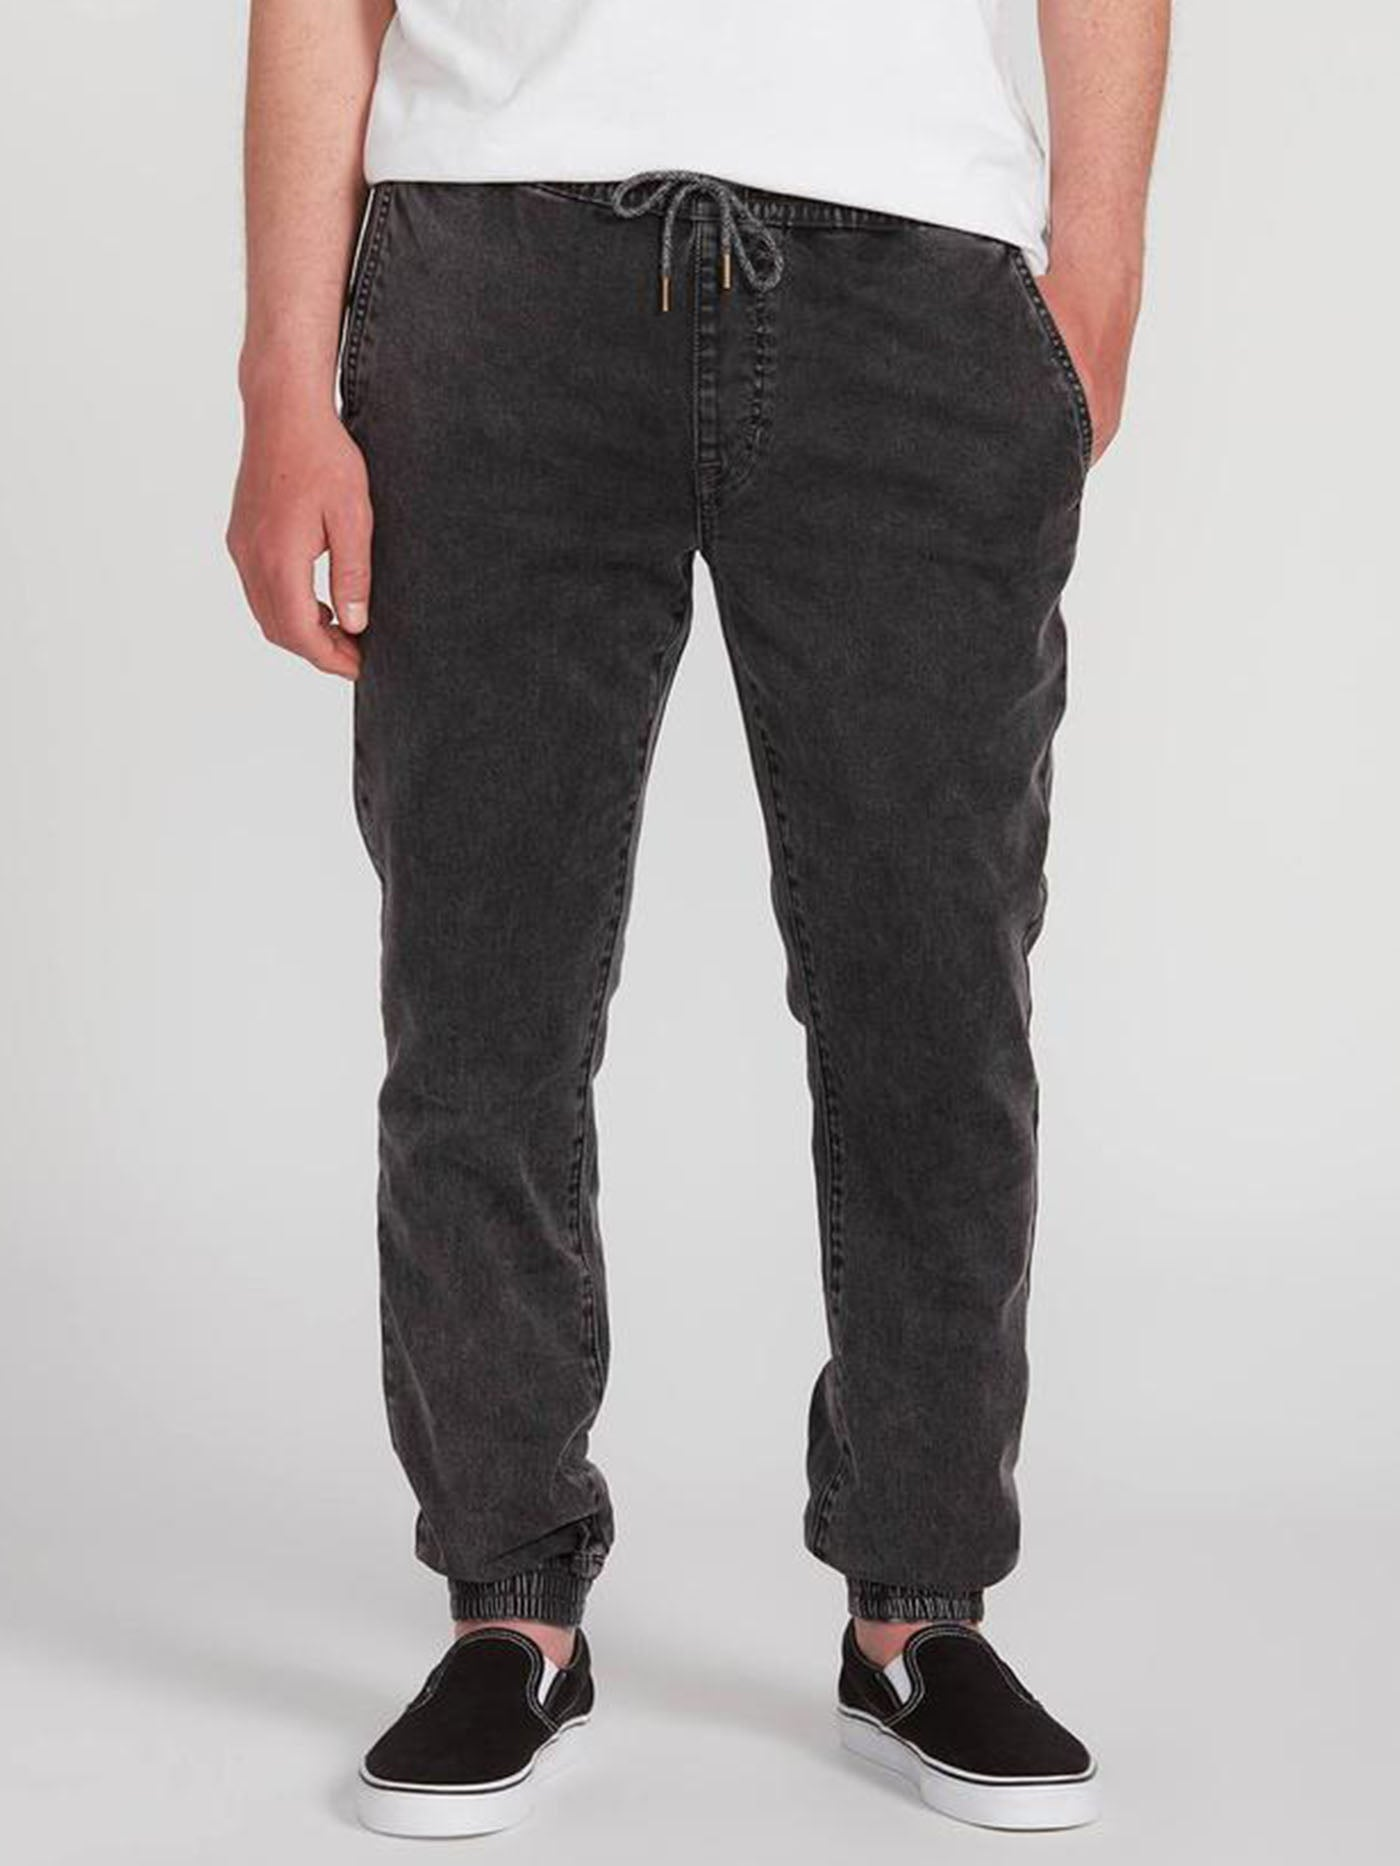 Frickin Slim Jogger Fit Smu Stealth Pants